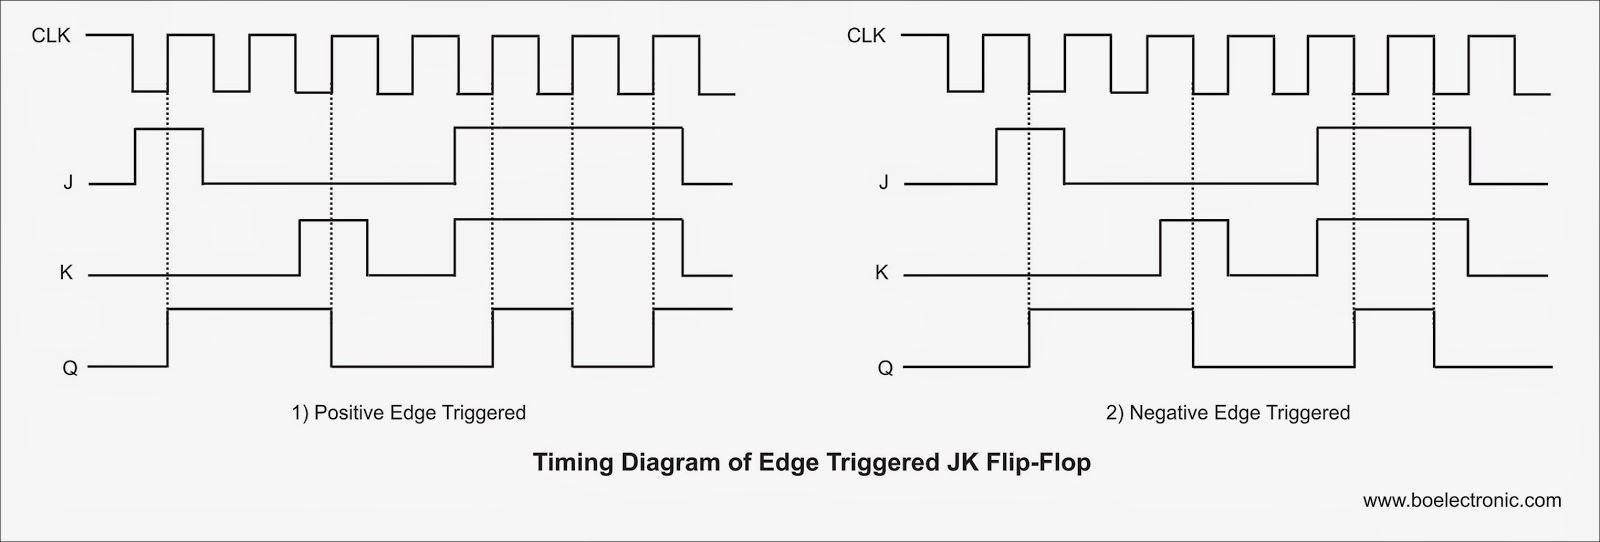 D Flip Flop Truth Table And Timing Diagram Schematics Data Wiring J K Logic Jk State Free Engine Image For User Manual Download Expirement